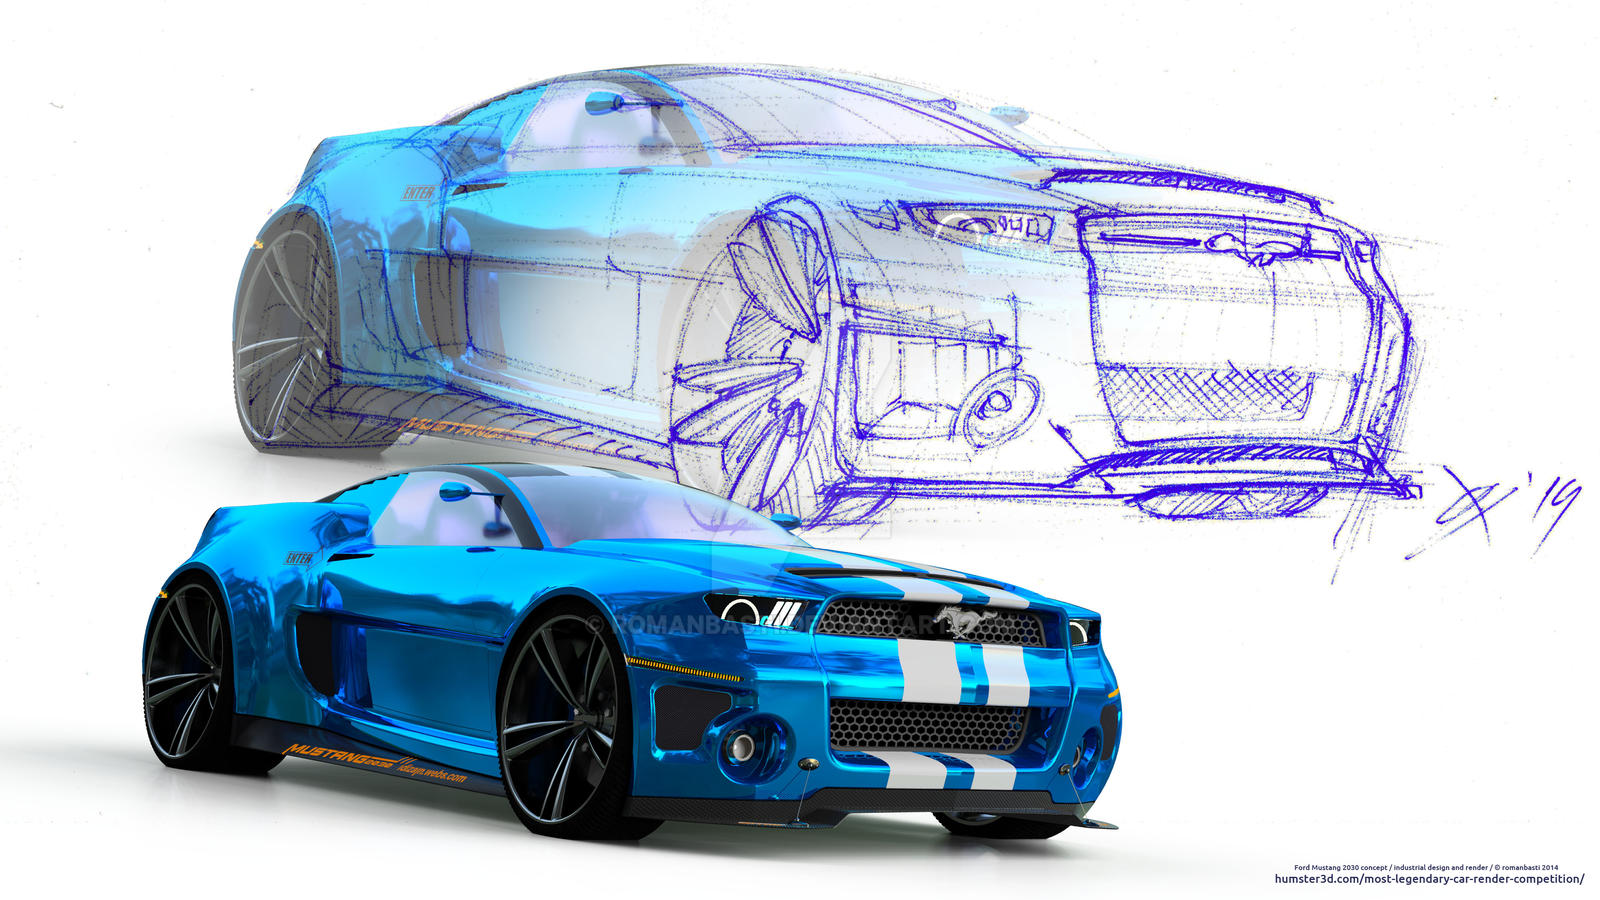 RB Mustang2030 concept Y2015 by romanbasti on DeviantArt